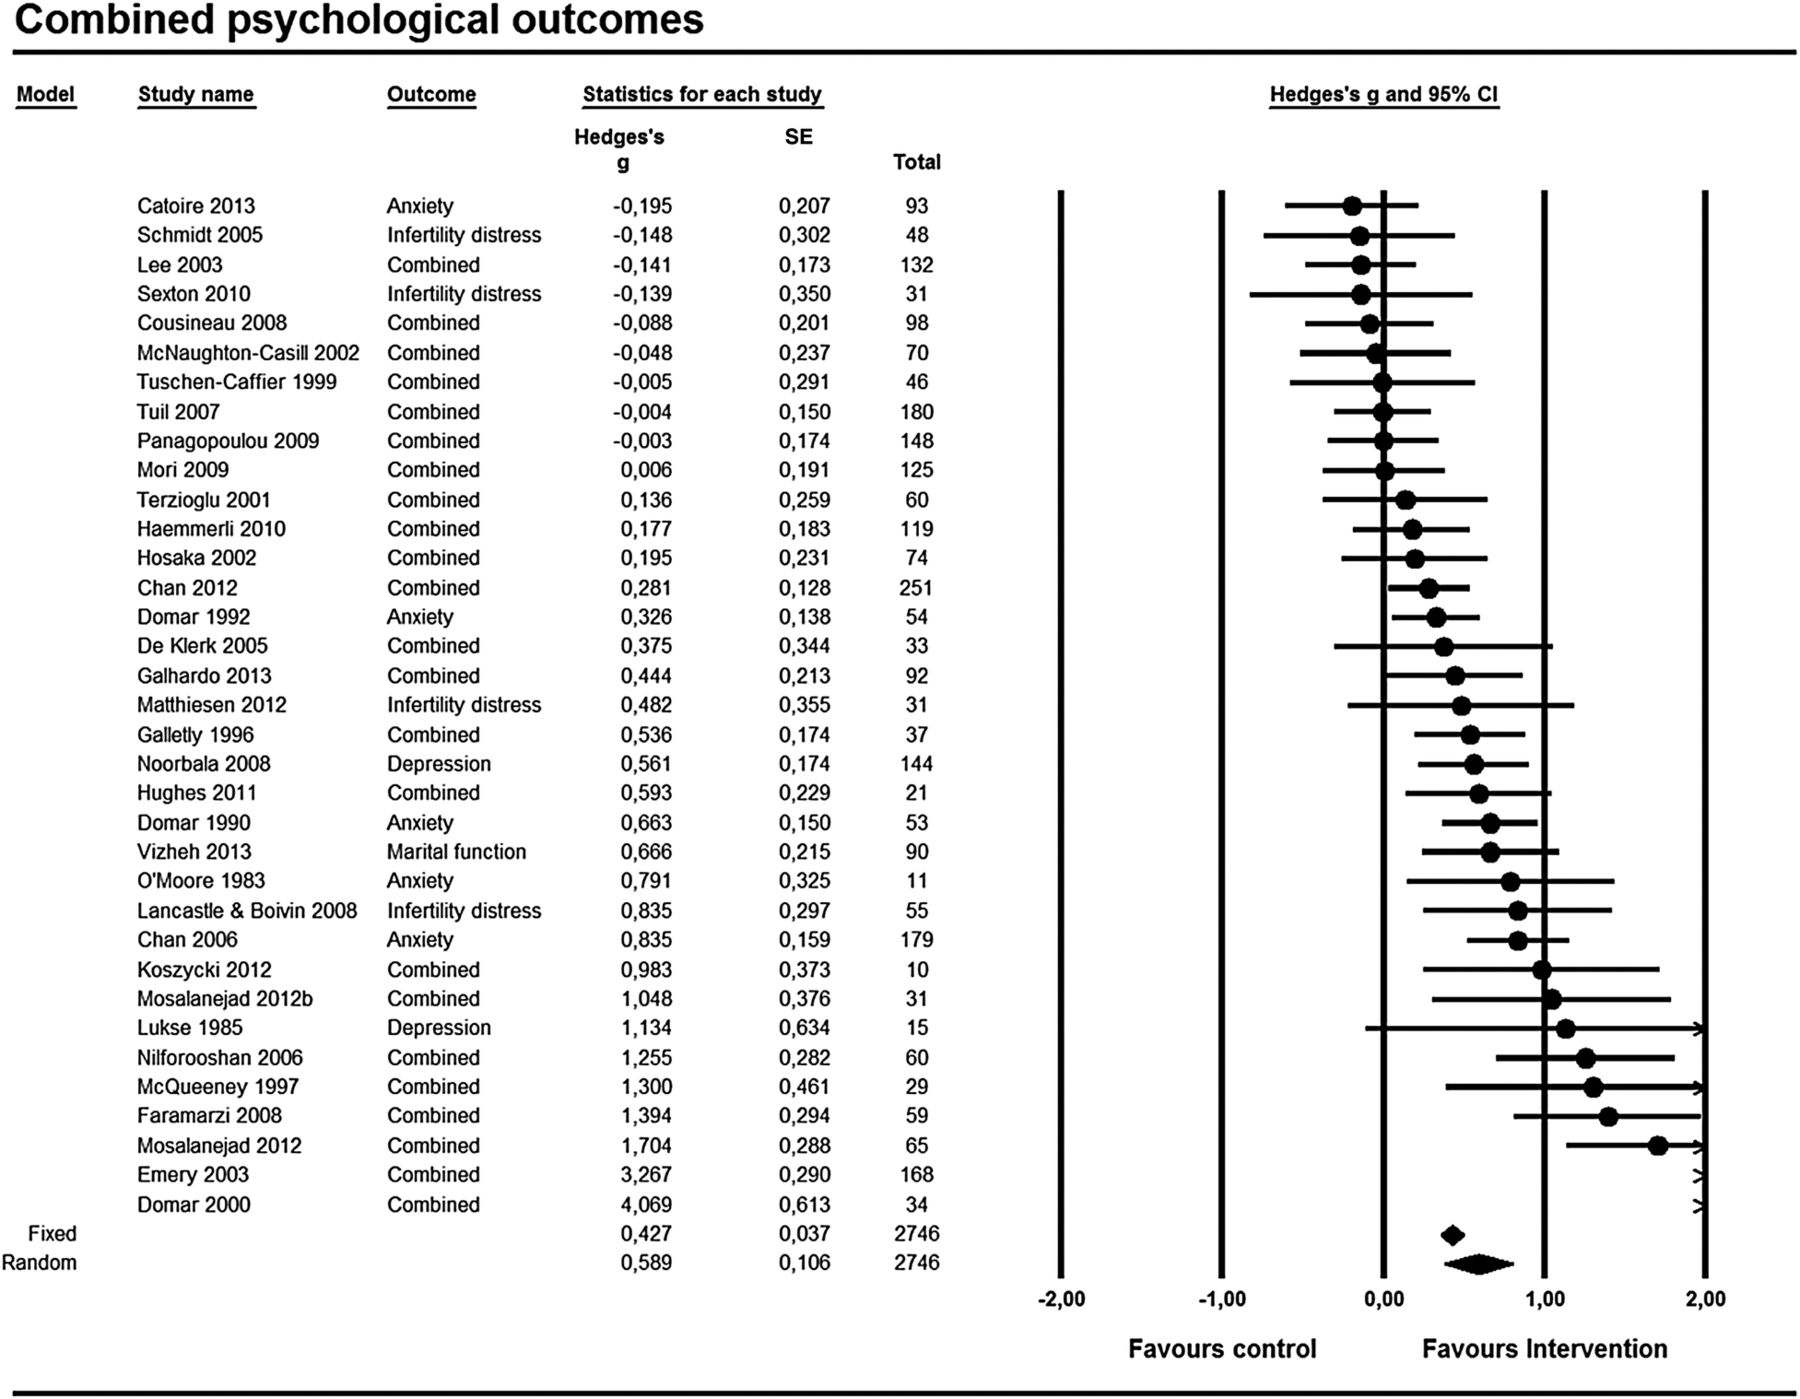 Efficacy of psychosocial interventions for psychological